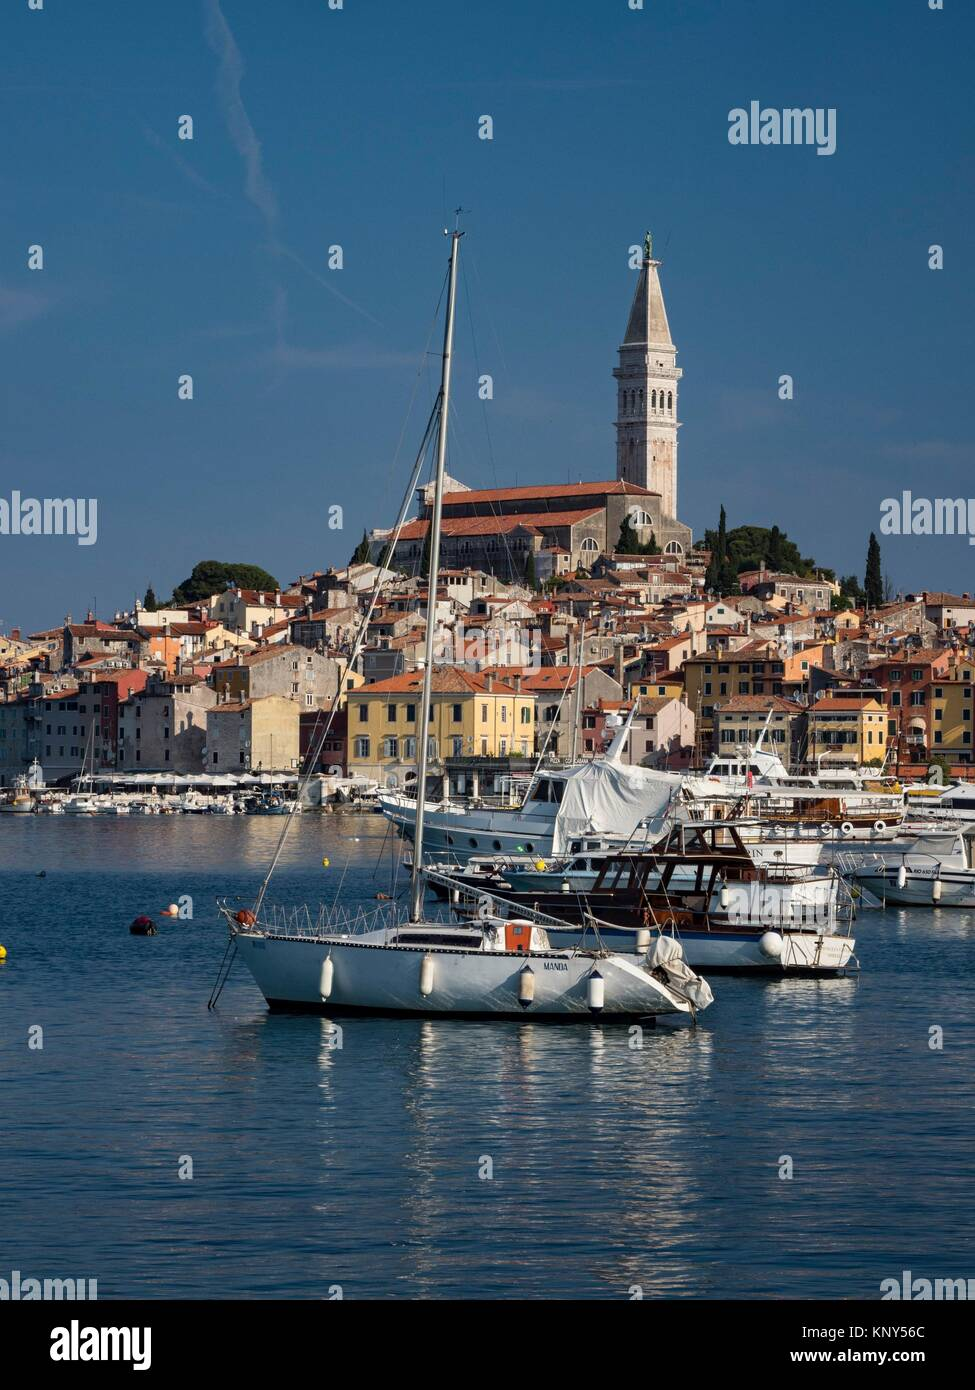 Rovinj Croatia Seaside. - Stock Image